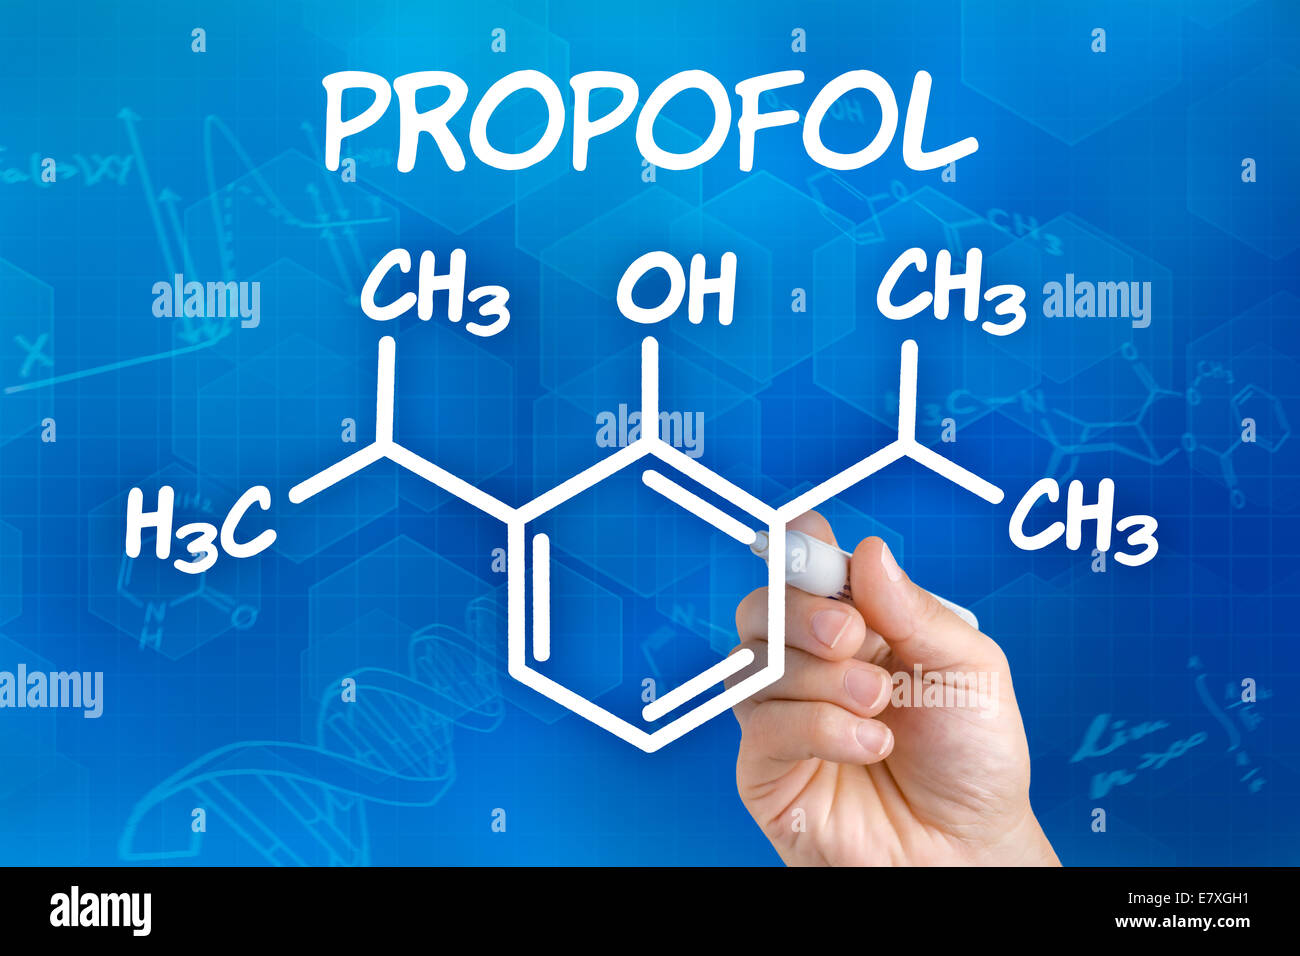 Hand with pen drawing the chemical formula of Propofol - Stock Image